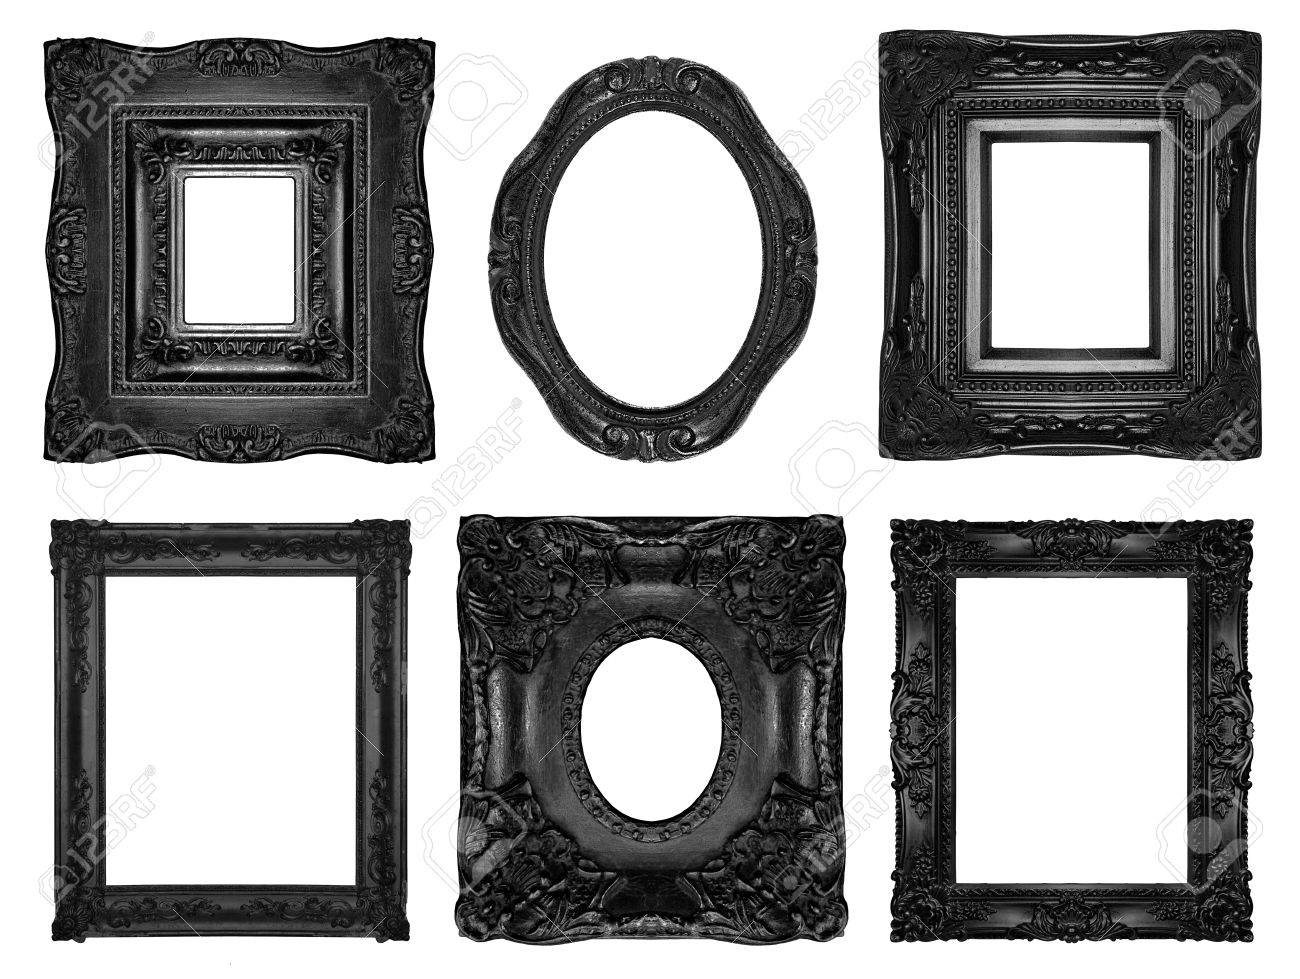 Black Ornate Frames Stock Photo, Picture And Royalty Free Image ...